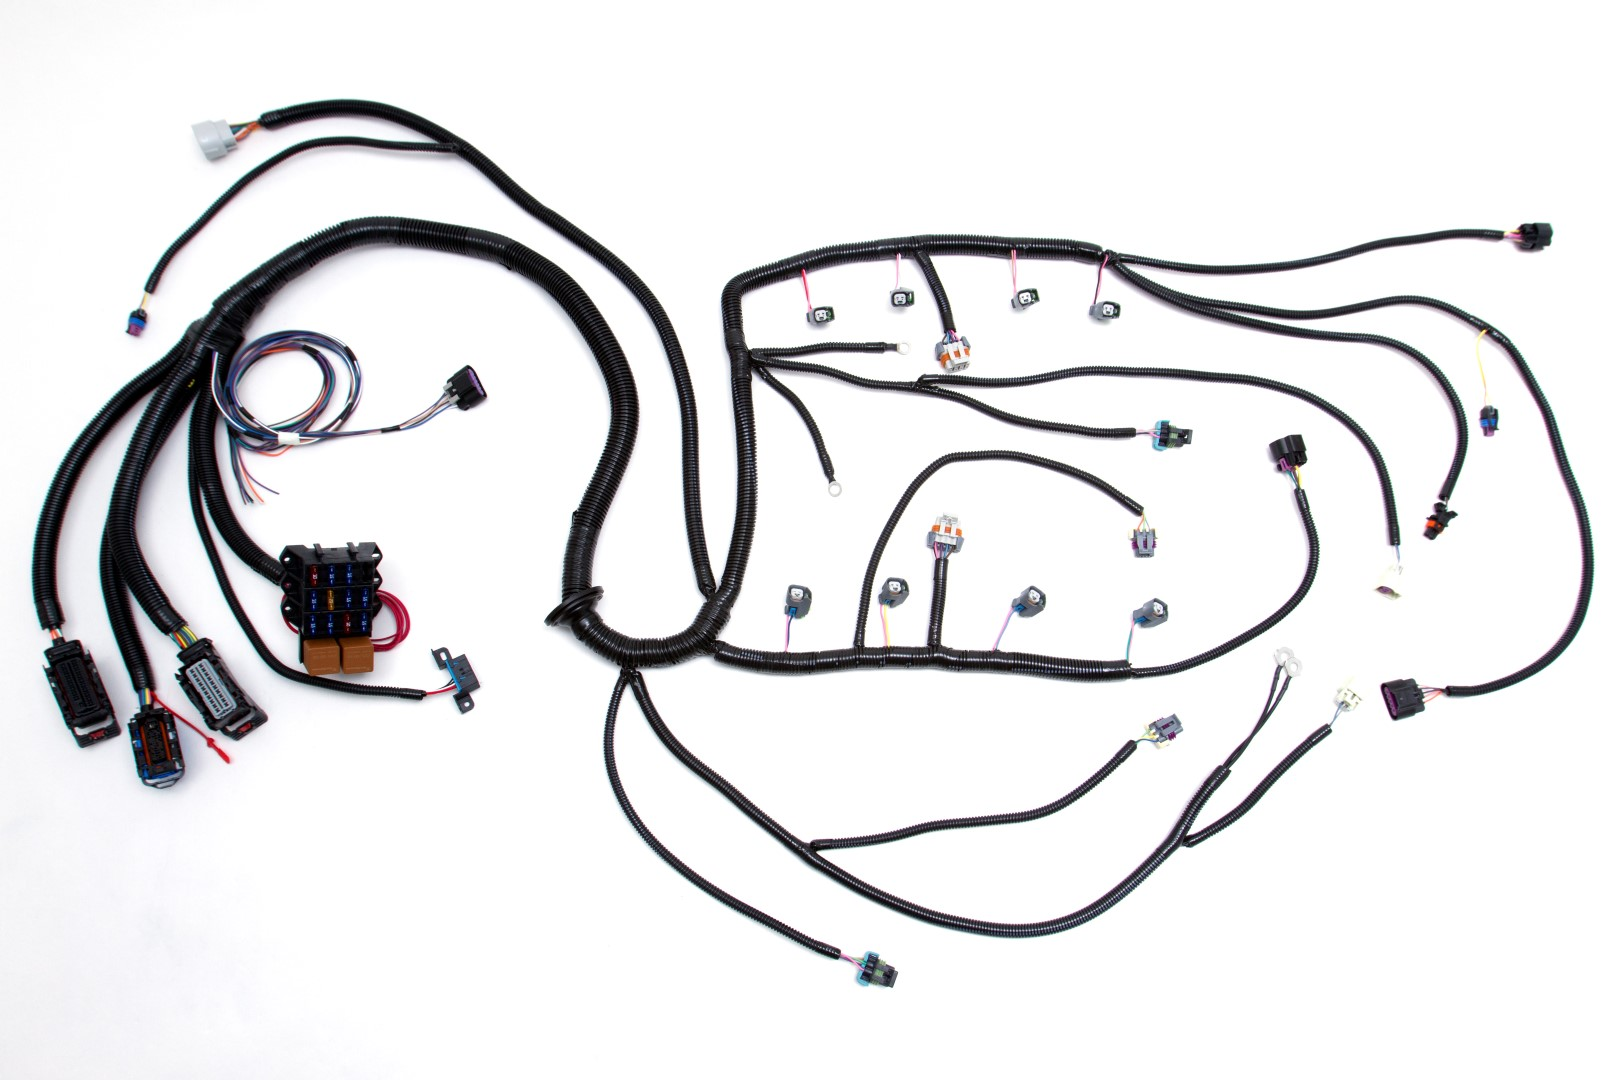 2005 Ls2 Engine Wiring Harness Auto Electrical Diagram Jazzmaster 50 S Related With